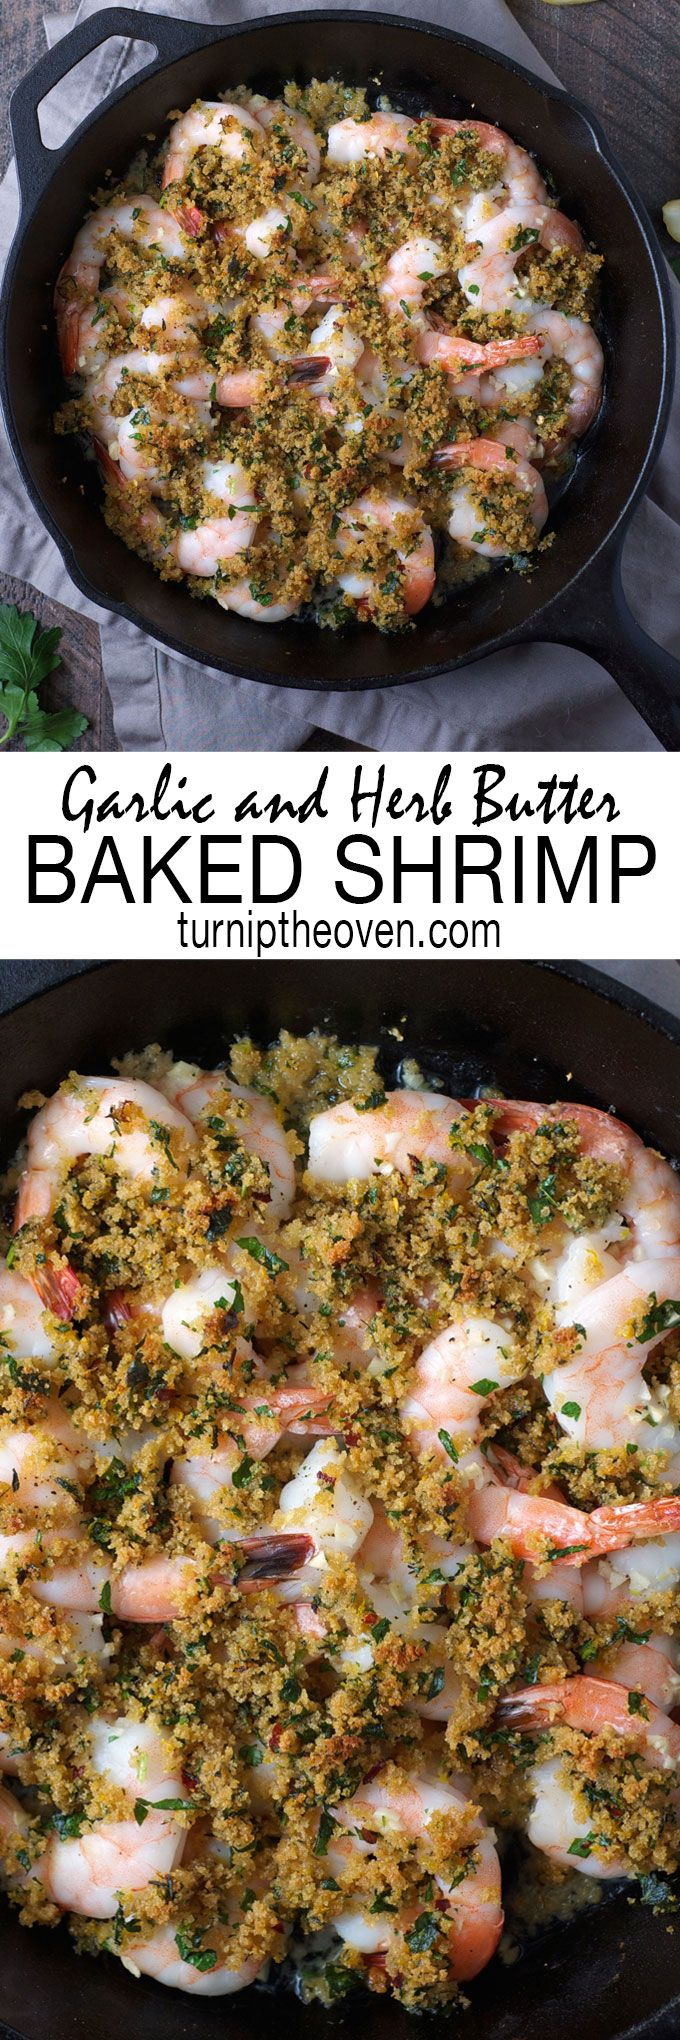 This simple shrimp dinner is ready in less than 30 minutes. It's light, healthy, and bursting with the flavors of garlic, fresh herbs, and toasty buttered panko breadcrumbs. Don't forget a baguette for mopping up all the delicious sauce!